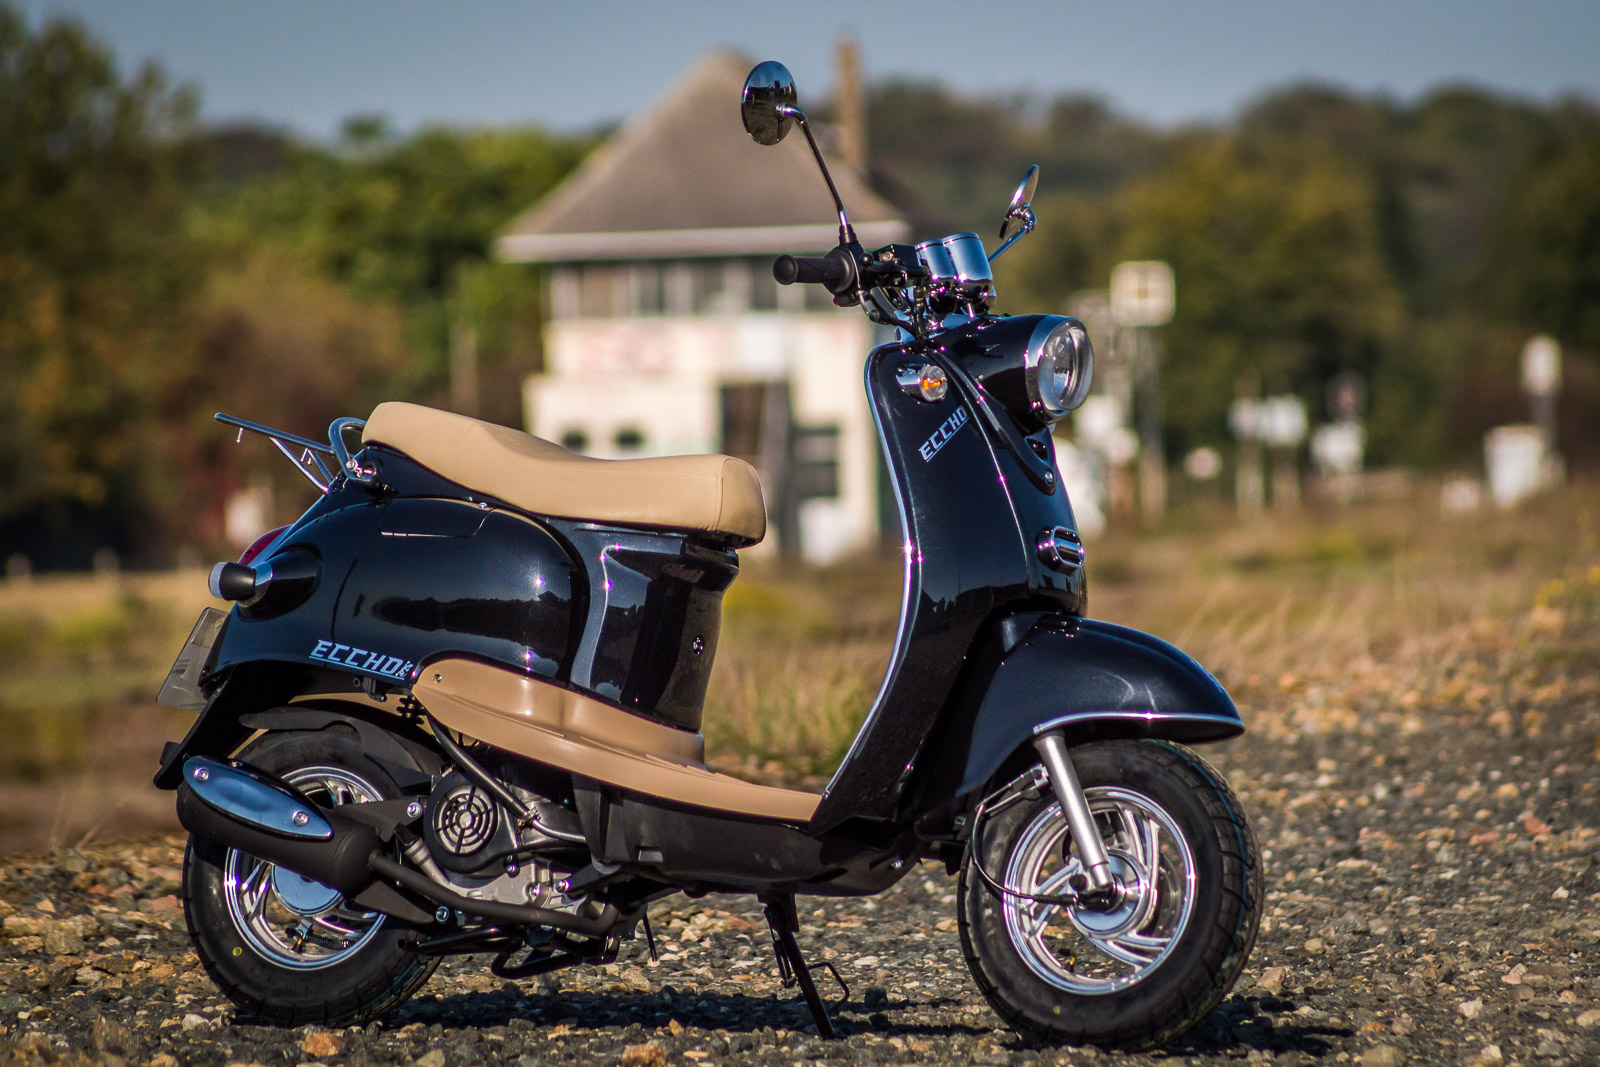 SCOOTER-50-ECCHO-RETRO-50-13